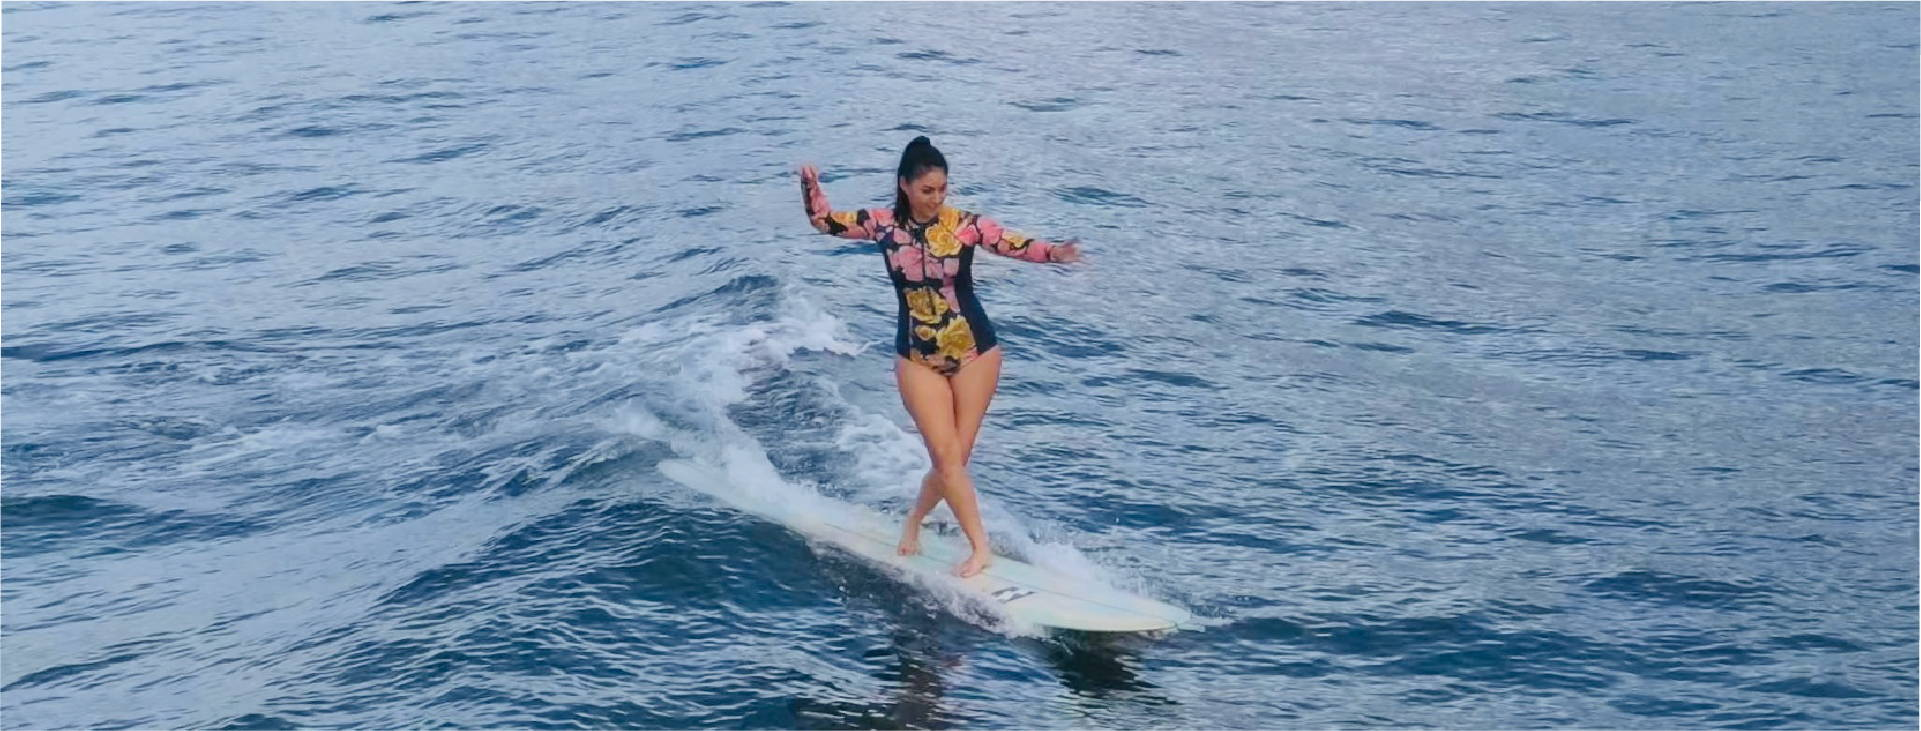 Lindsay is wearing Eidon's Hayden paddle suit from the Layla collection.